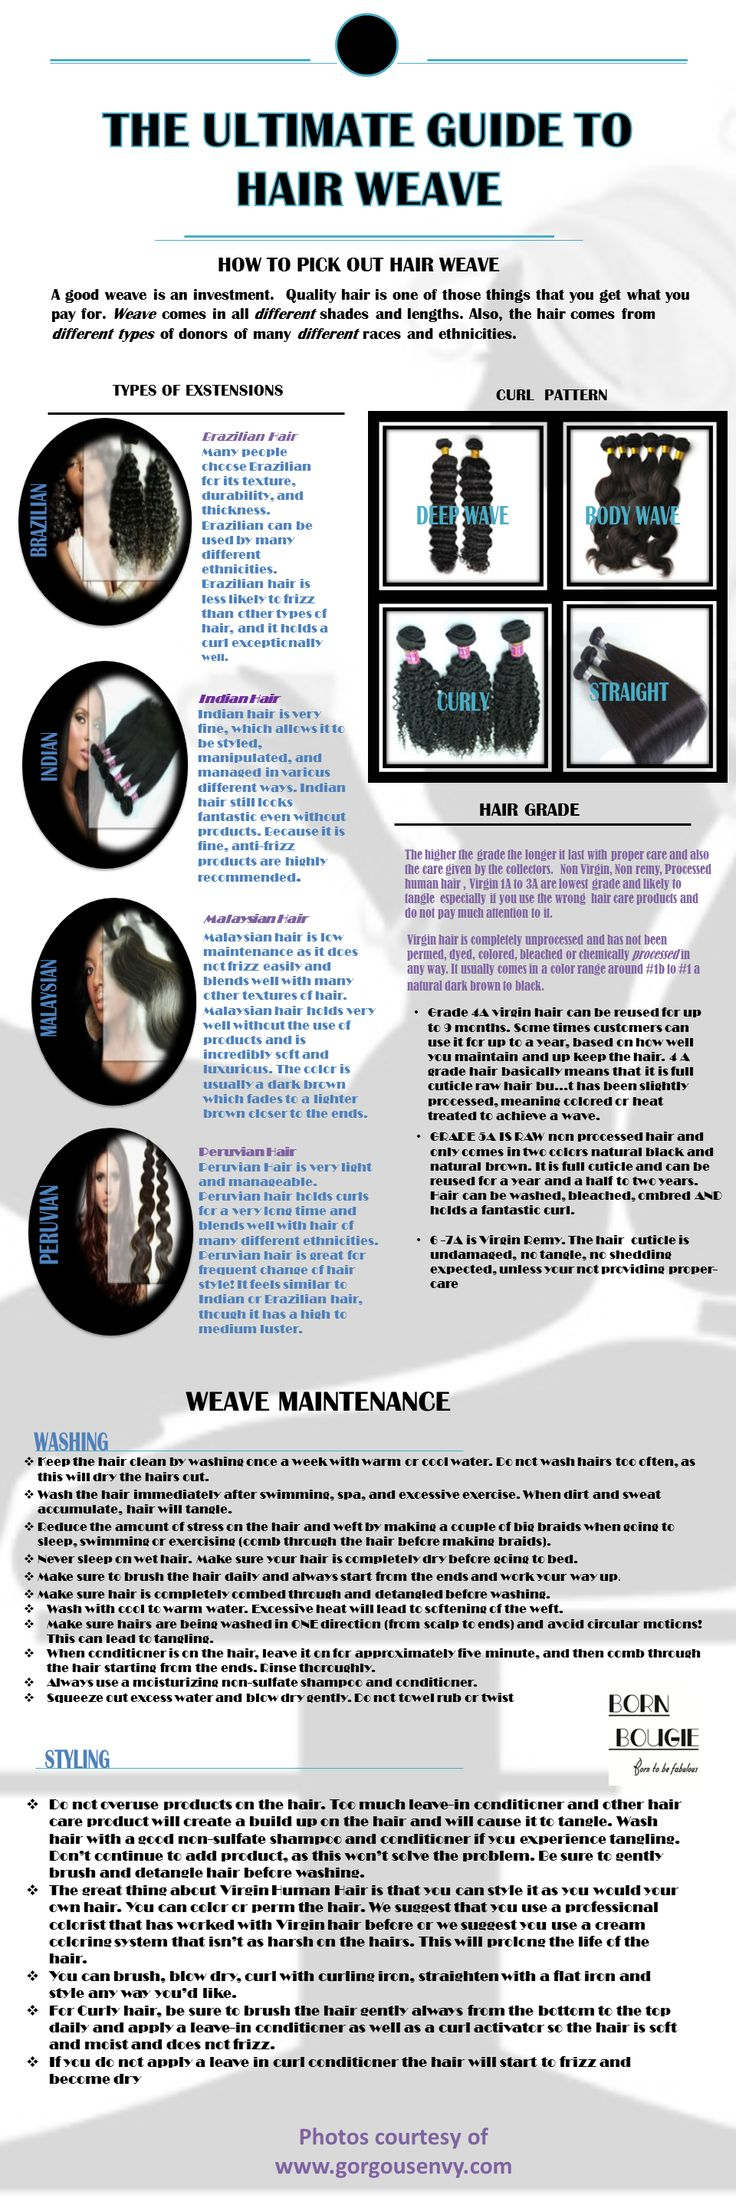 The Ultimate Guide to Hair Weave